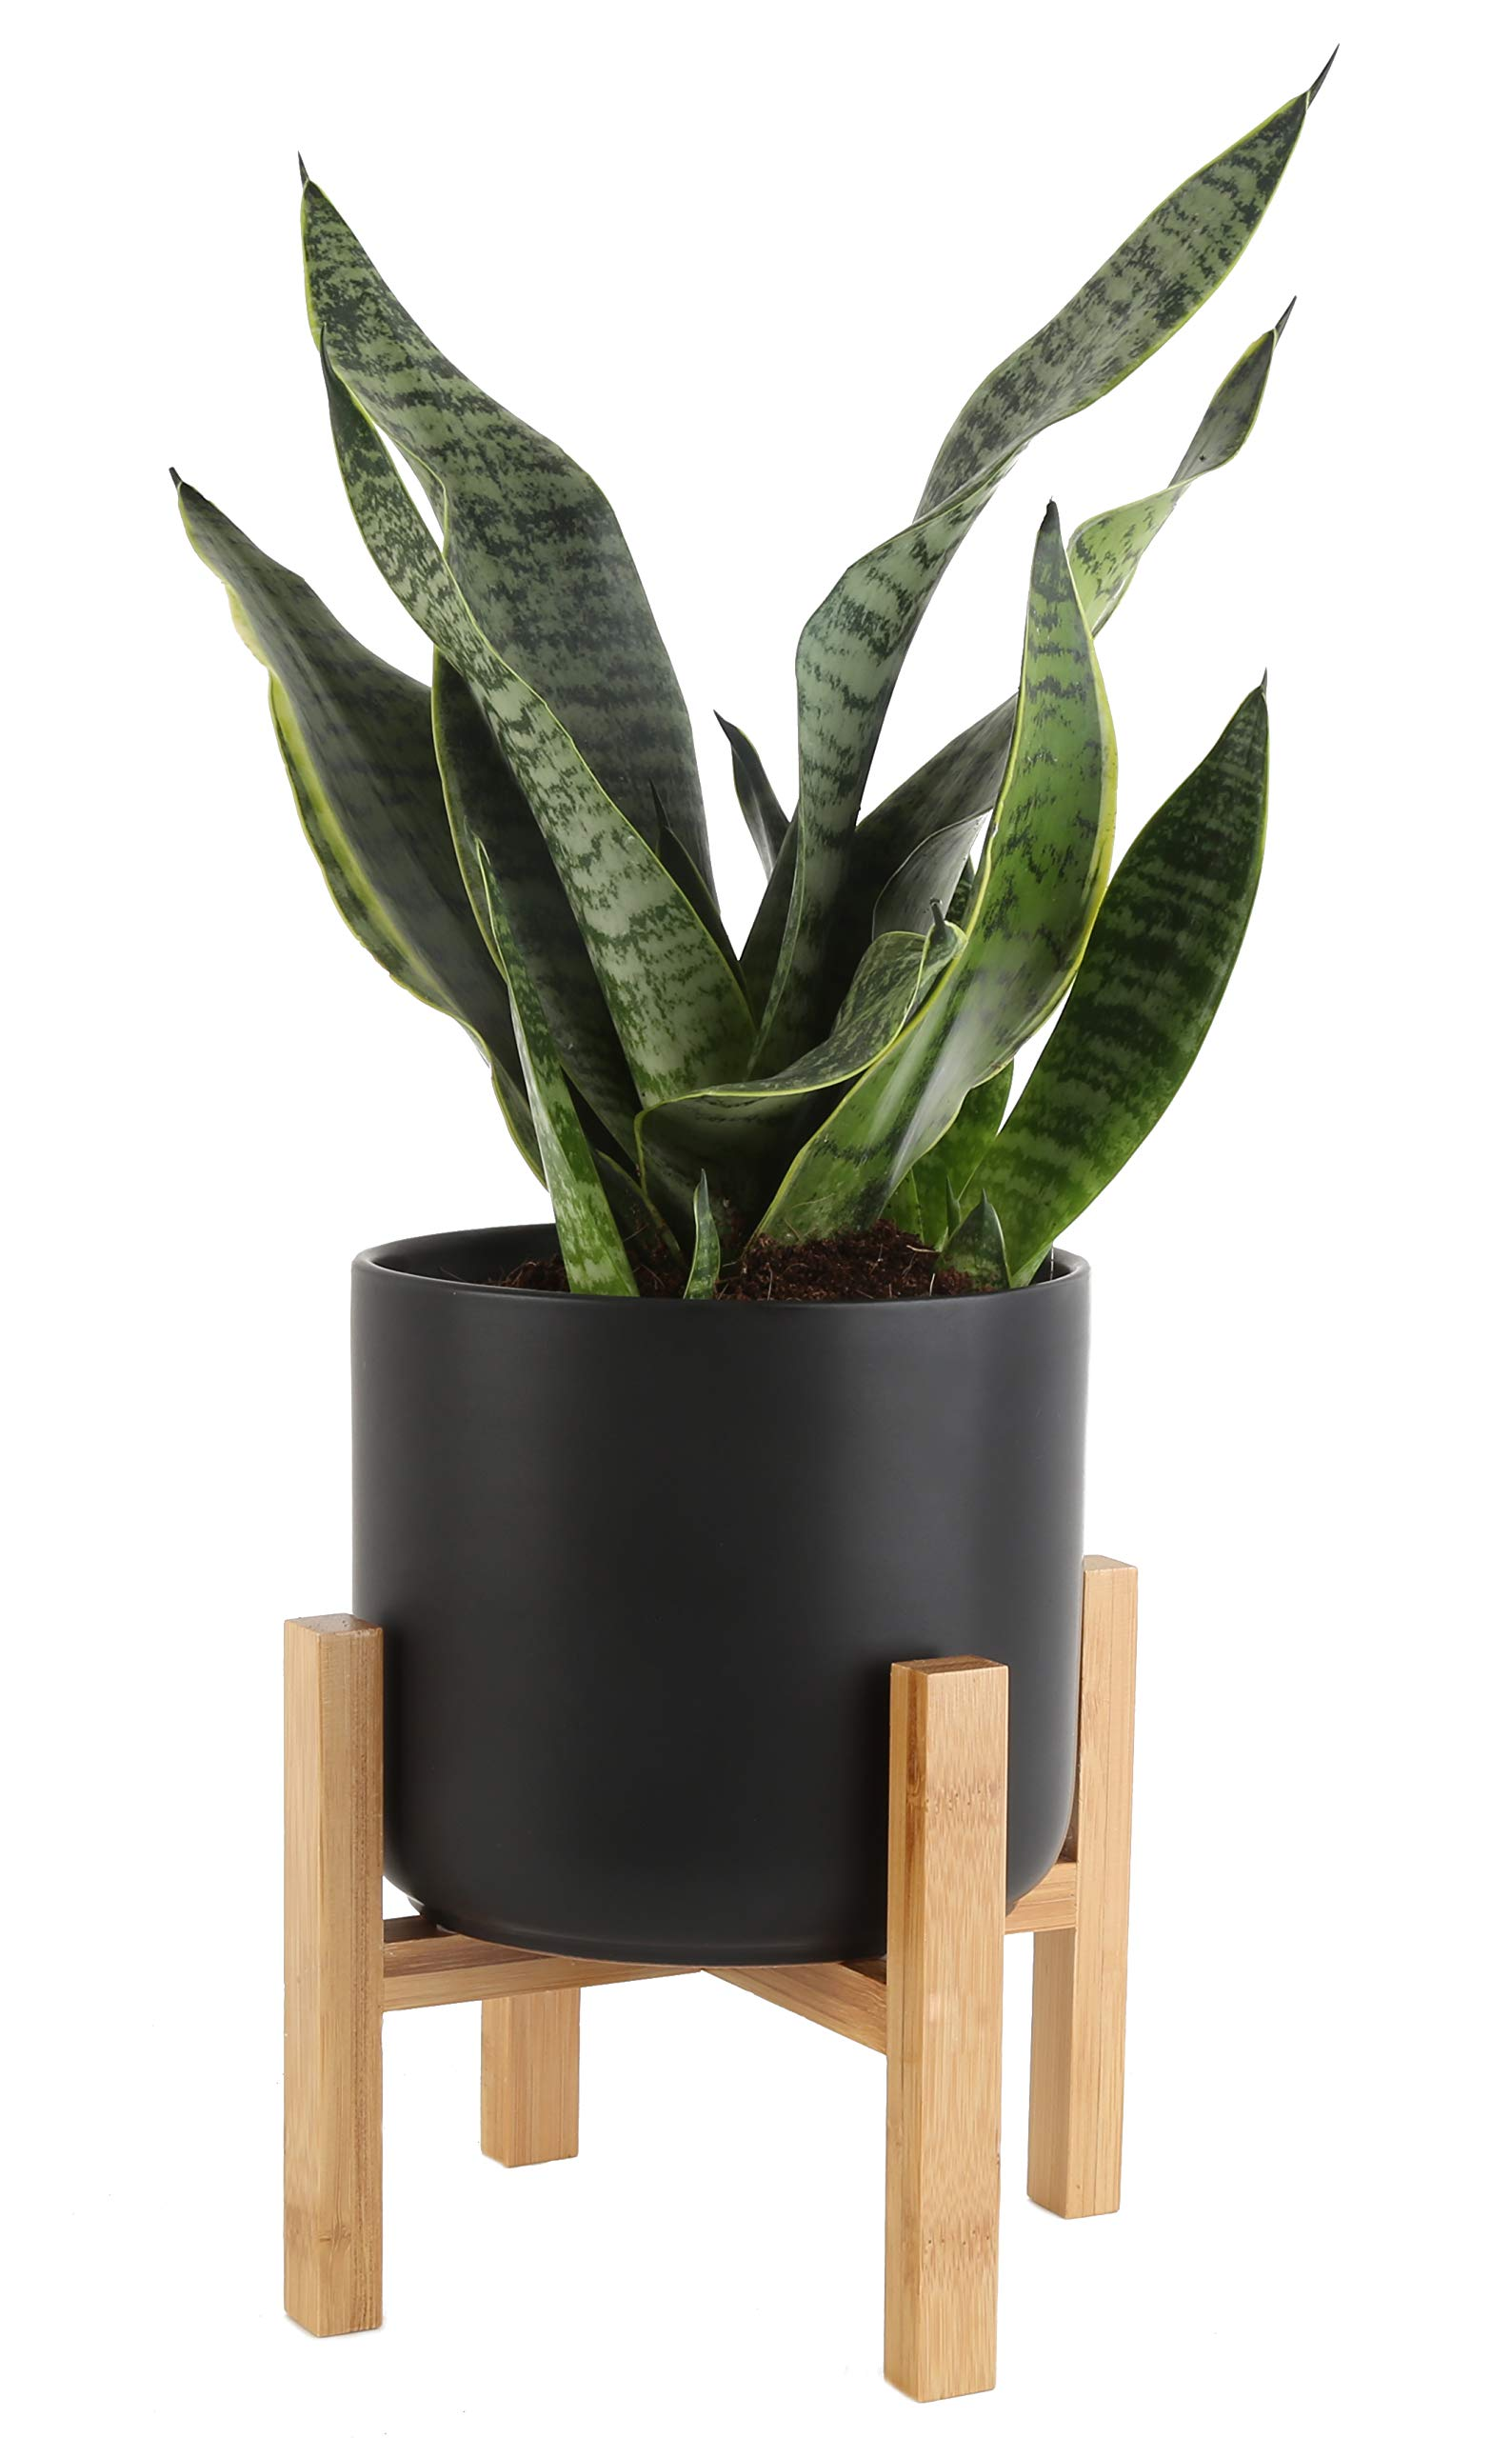 Costa Farms Snake Plant, Sansevieria, with 6.5-inch Wide Mid-Century Modern Planter and Plant Stand Set, Black, Fits on Floor/Tabletops